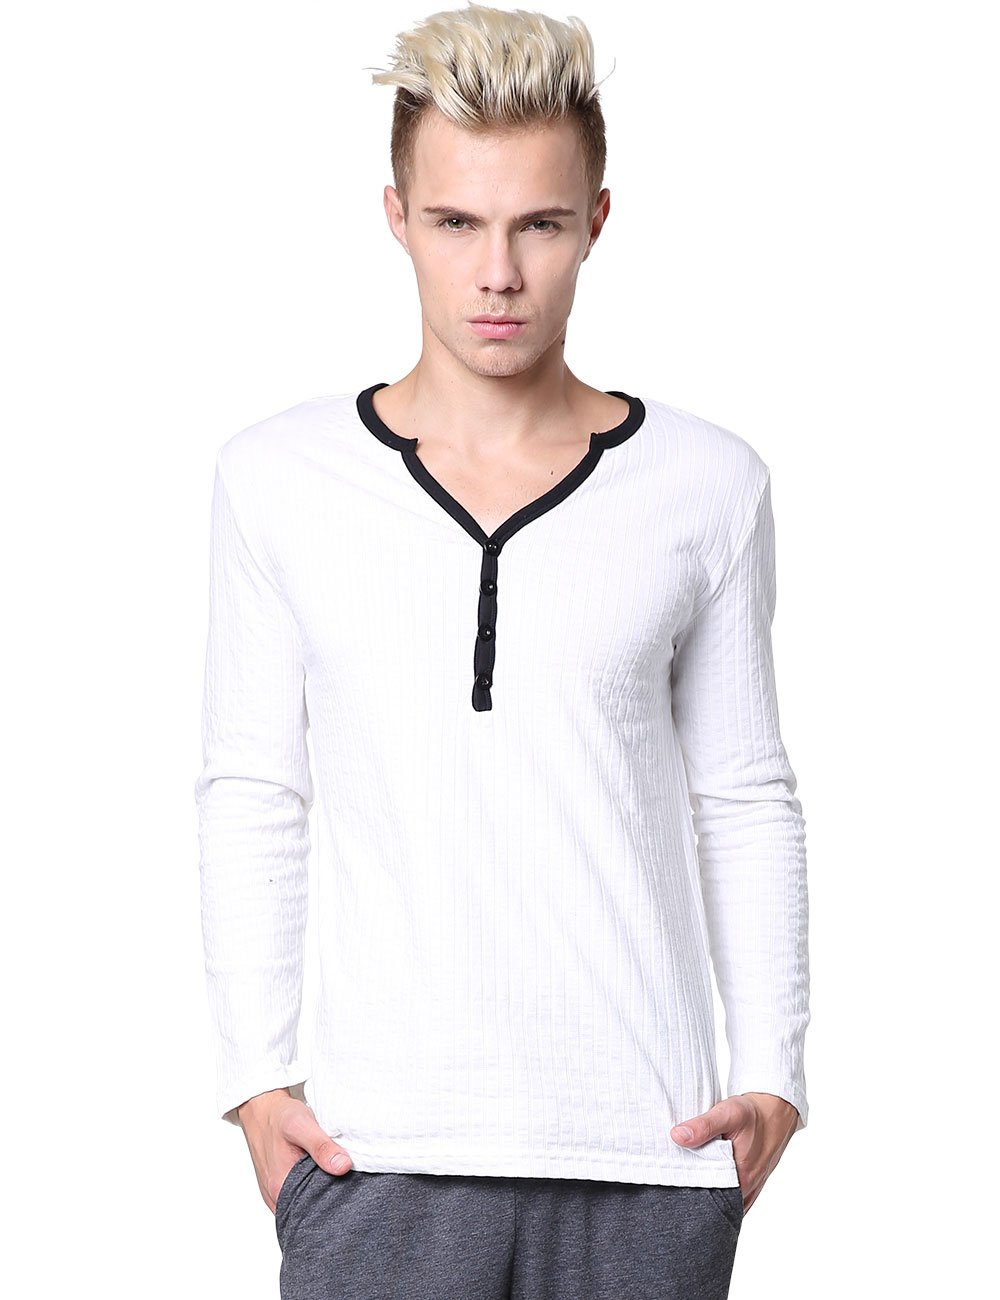 Godsen Men's Long Sleeve Henley Shirt Casual Pajama Tops GM00231